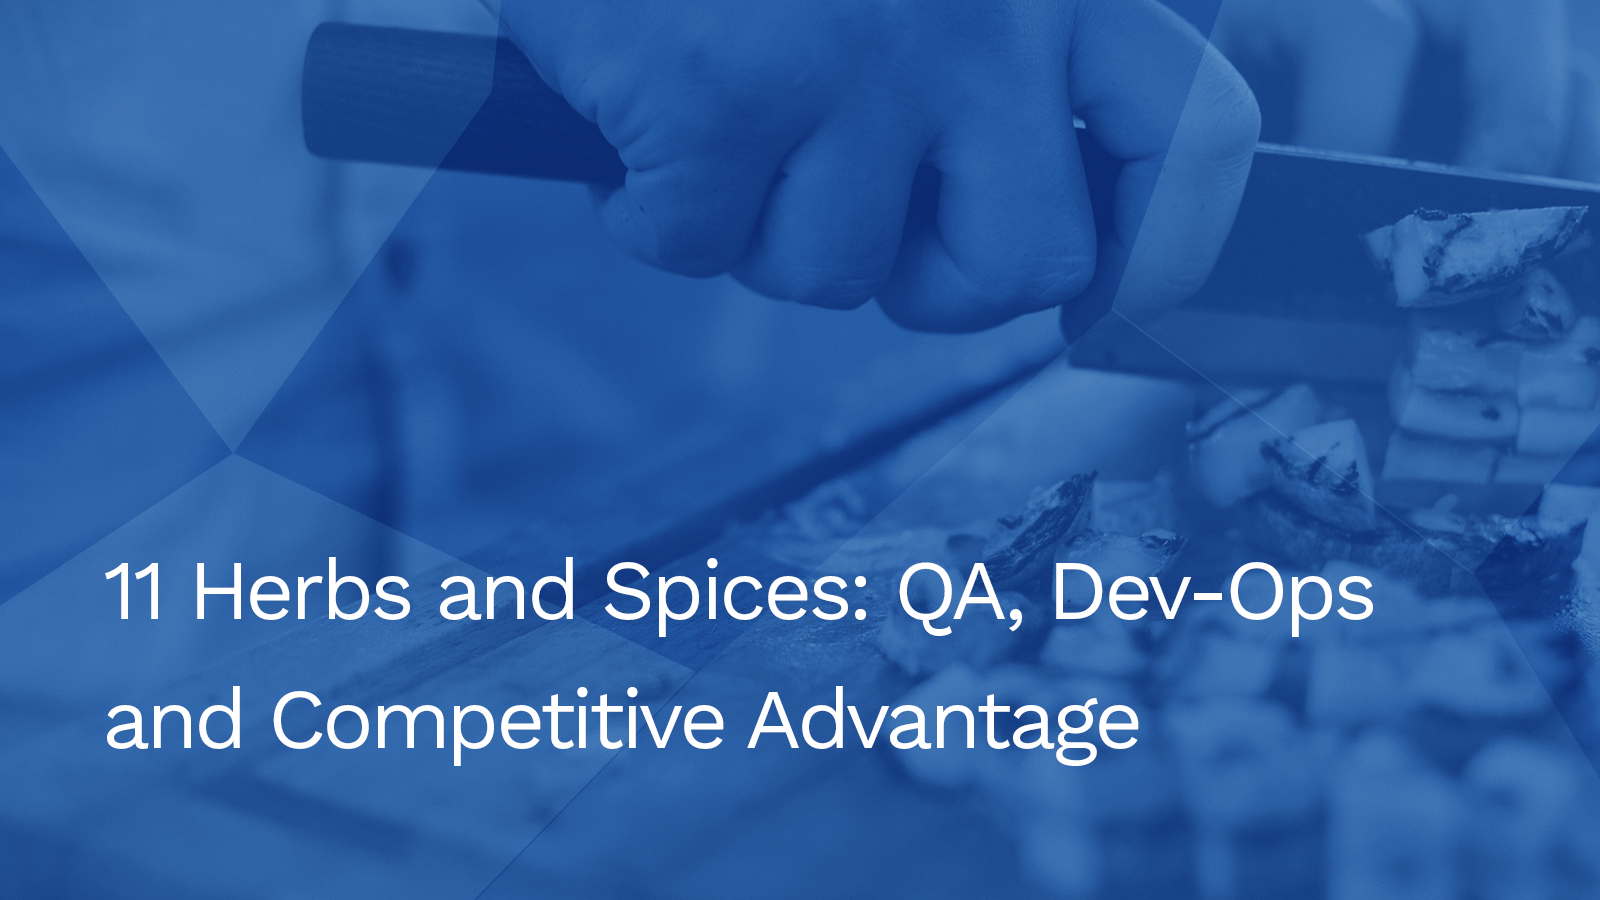 11 Herbs and Spices: QA, Dev-Ops and Competitive Advantage